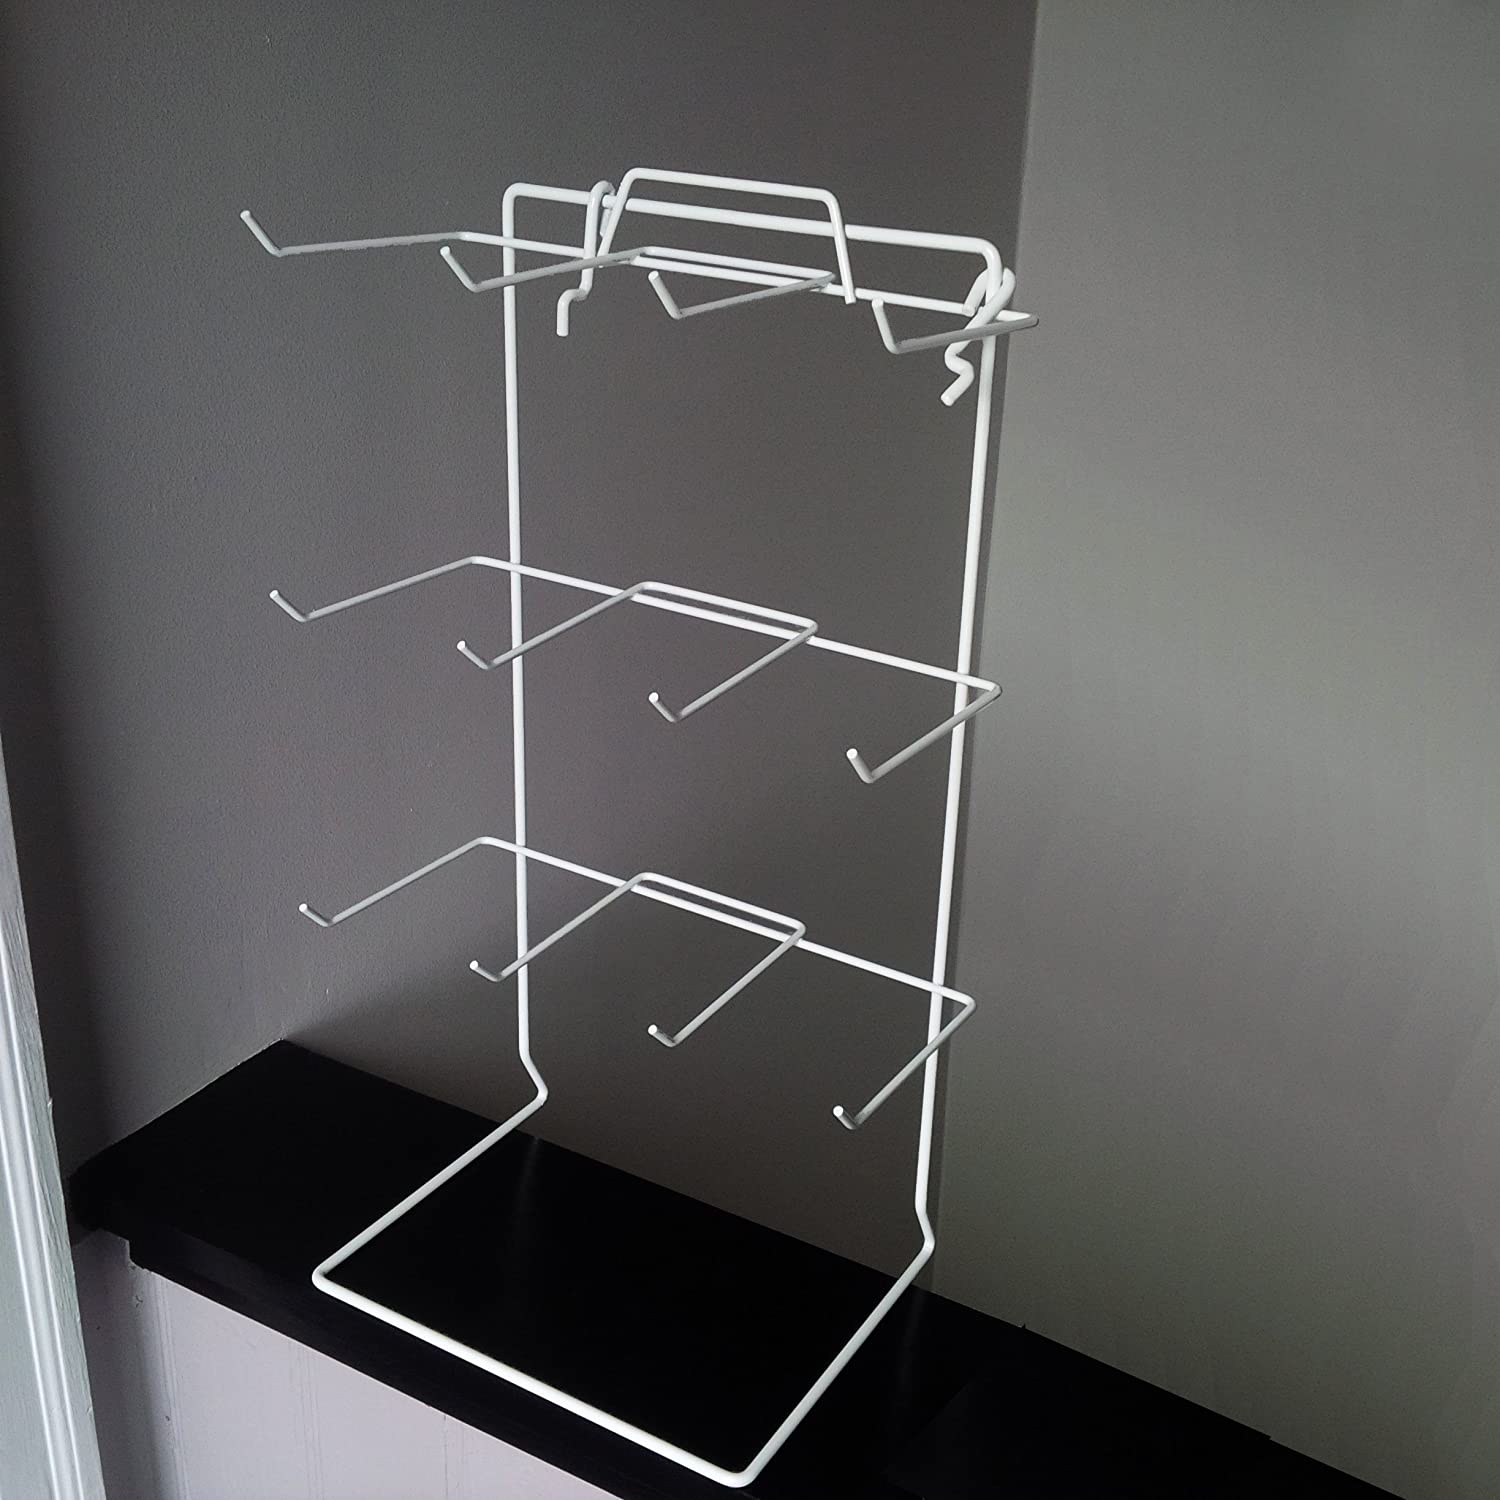 3 PCS WHITE 3-HOOK WIRE COUNTERTOP RACK KEYCHAIN DISPLAY WITH SIGN HOLDER